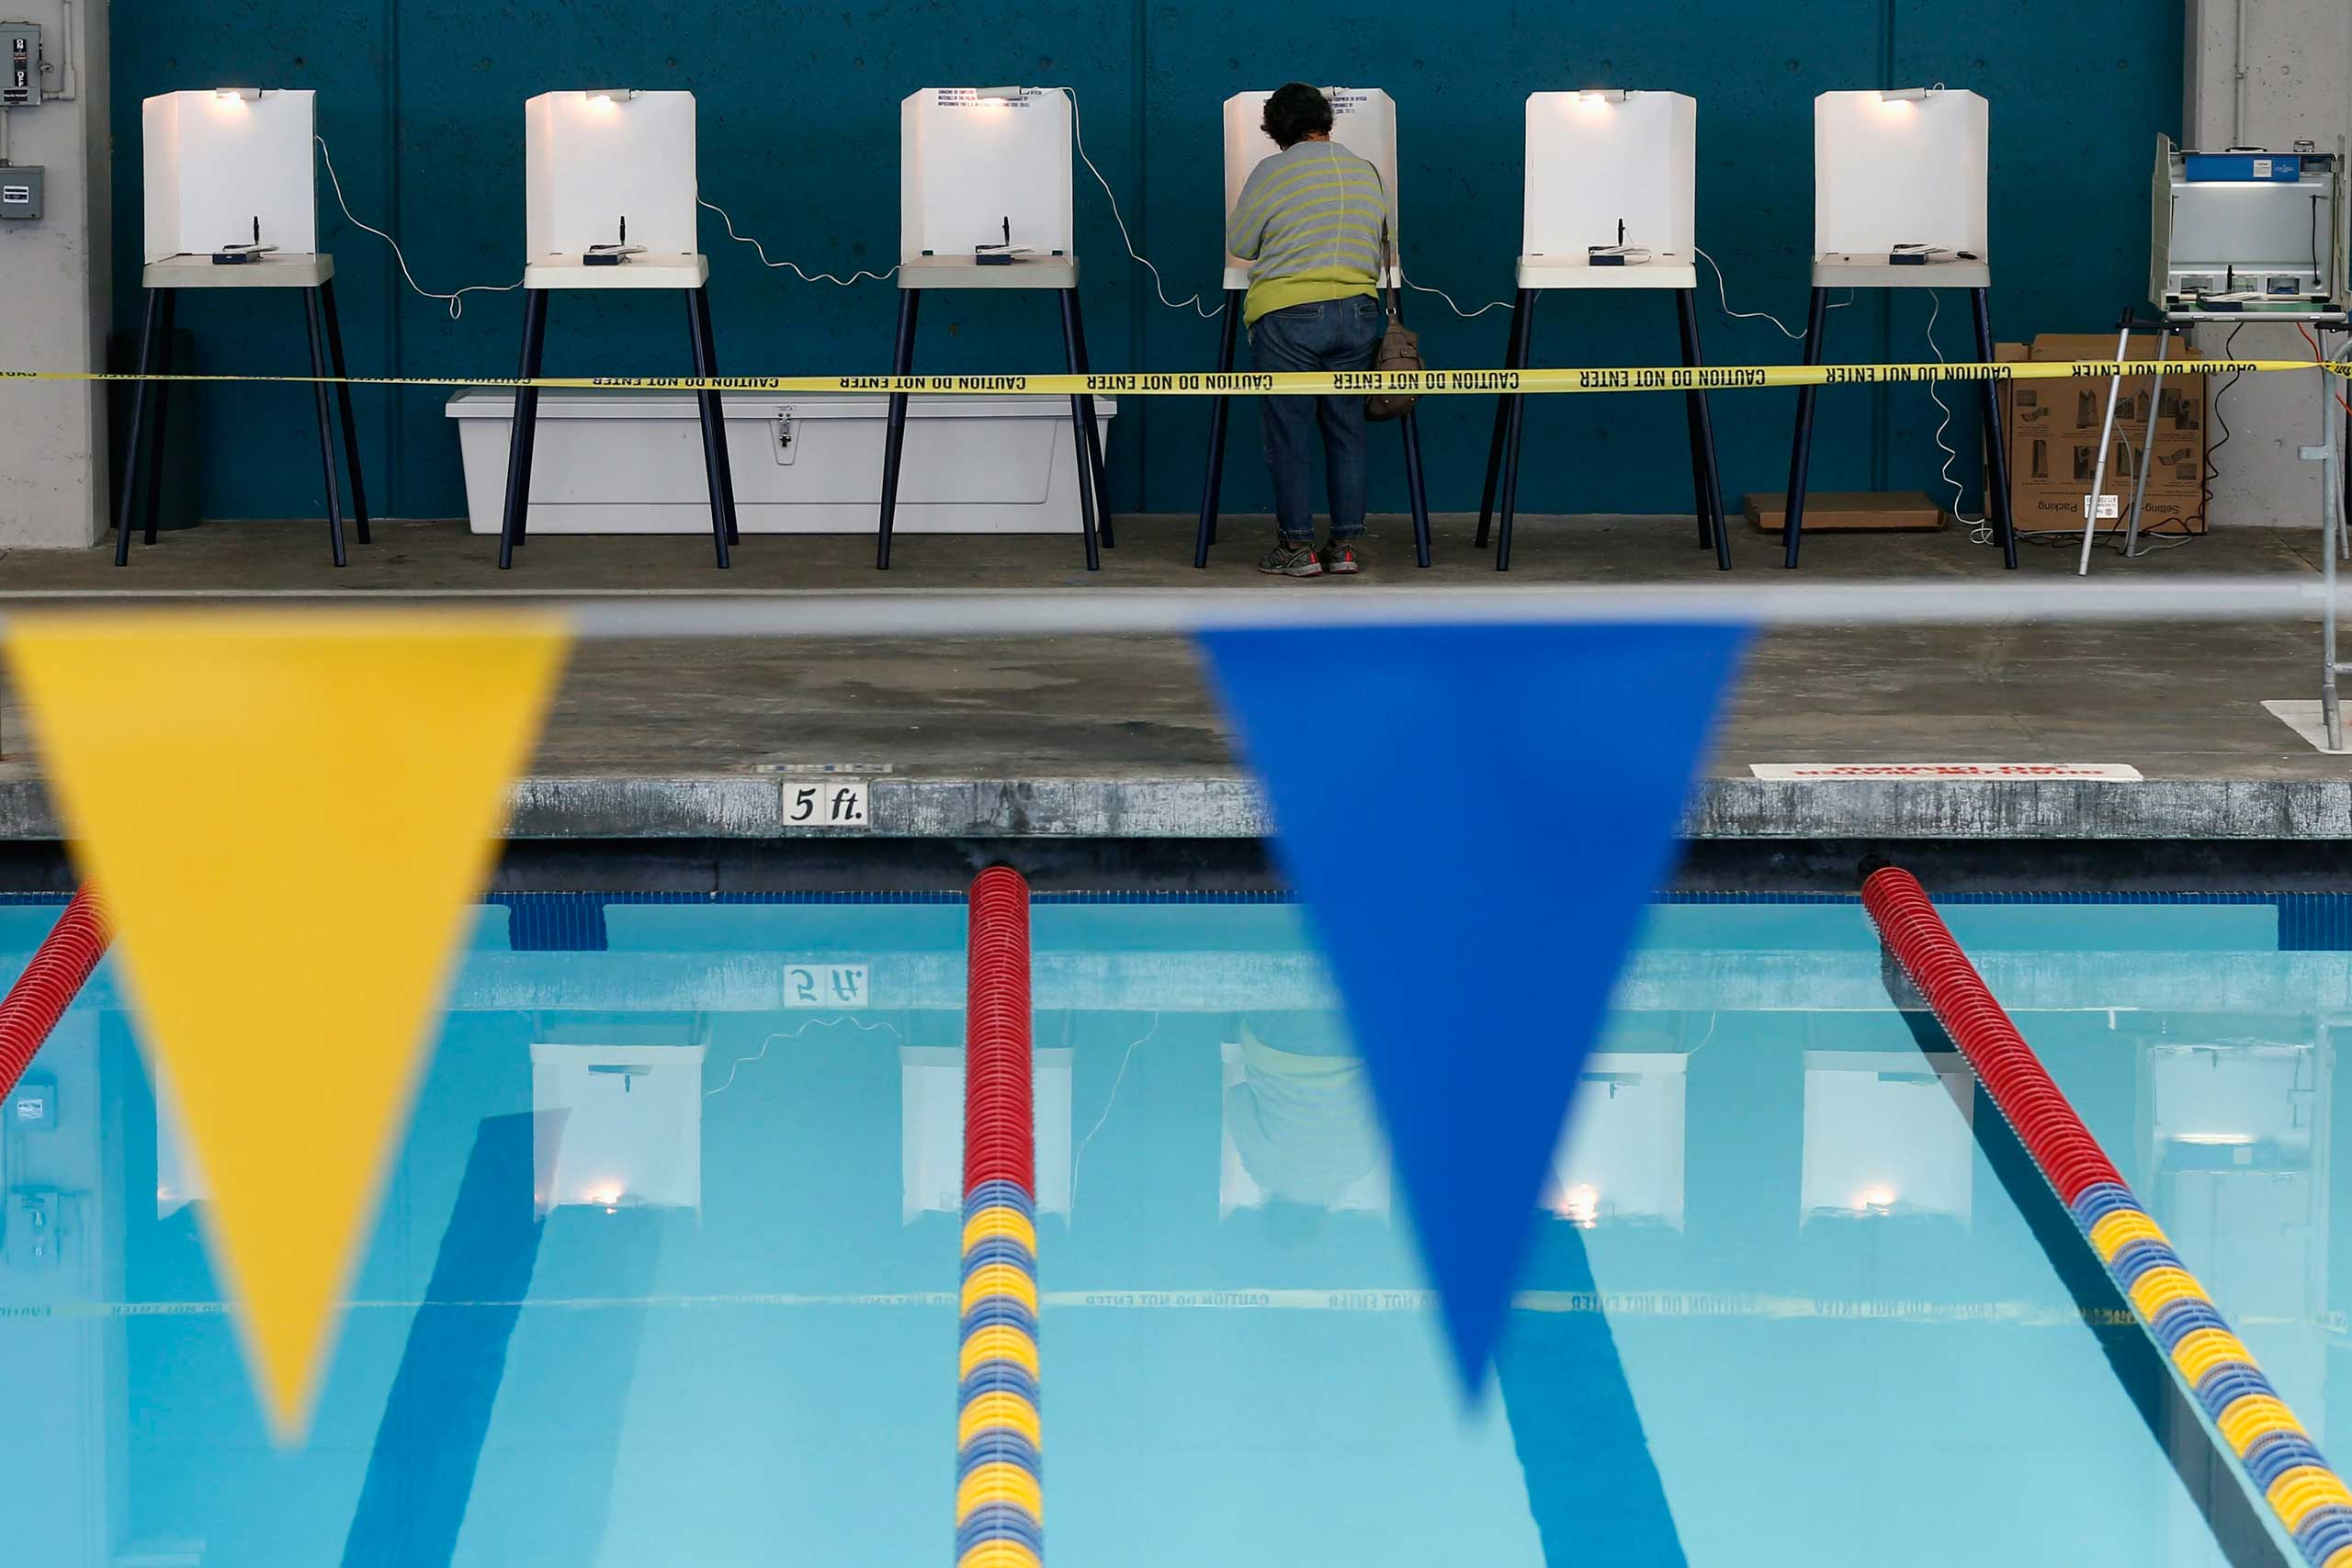 A woman fills out her ballot at a polling place at a swimming pool in Los Angeles on Nov. 4, 2014.